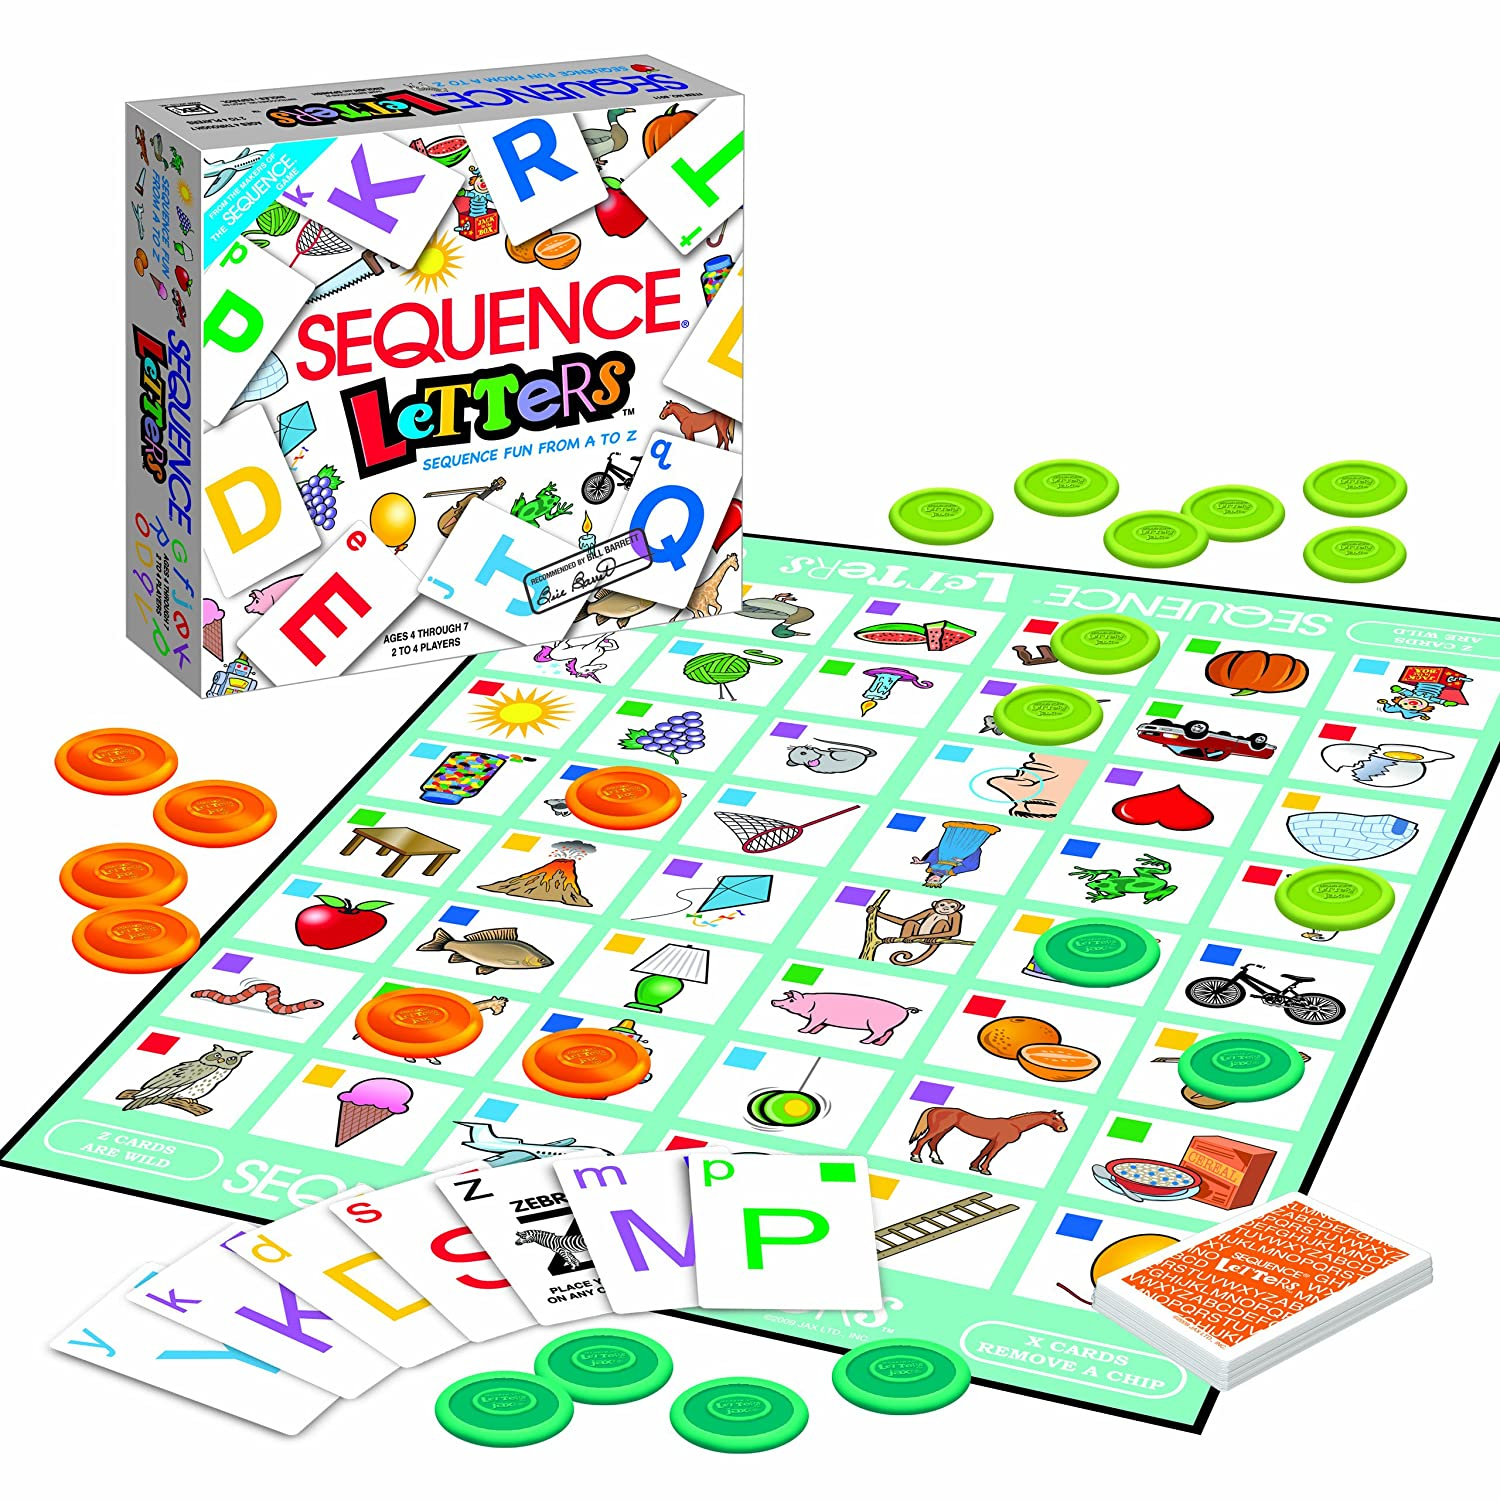 AmazonCom Jax Sequence Letters Toys  Games